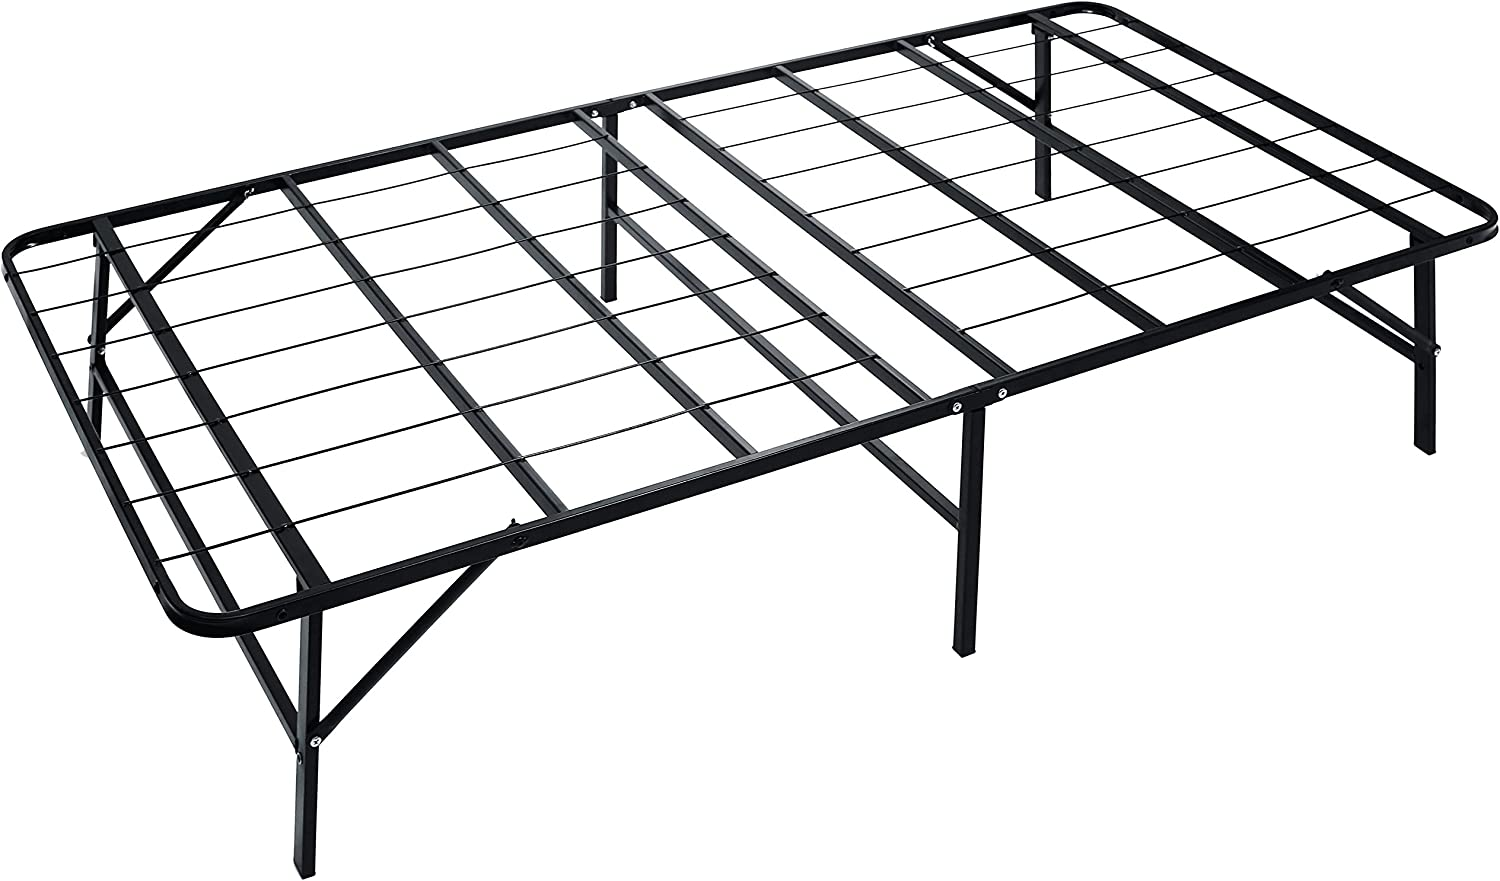 Naomi Home idealBase 14 Platform Metal Bed Frame – Mattress Foundation Box Spring Replacement Twin Black